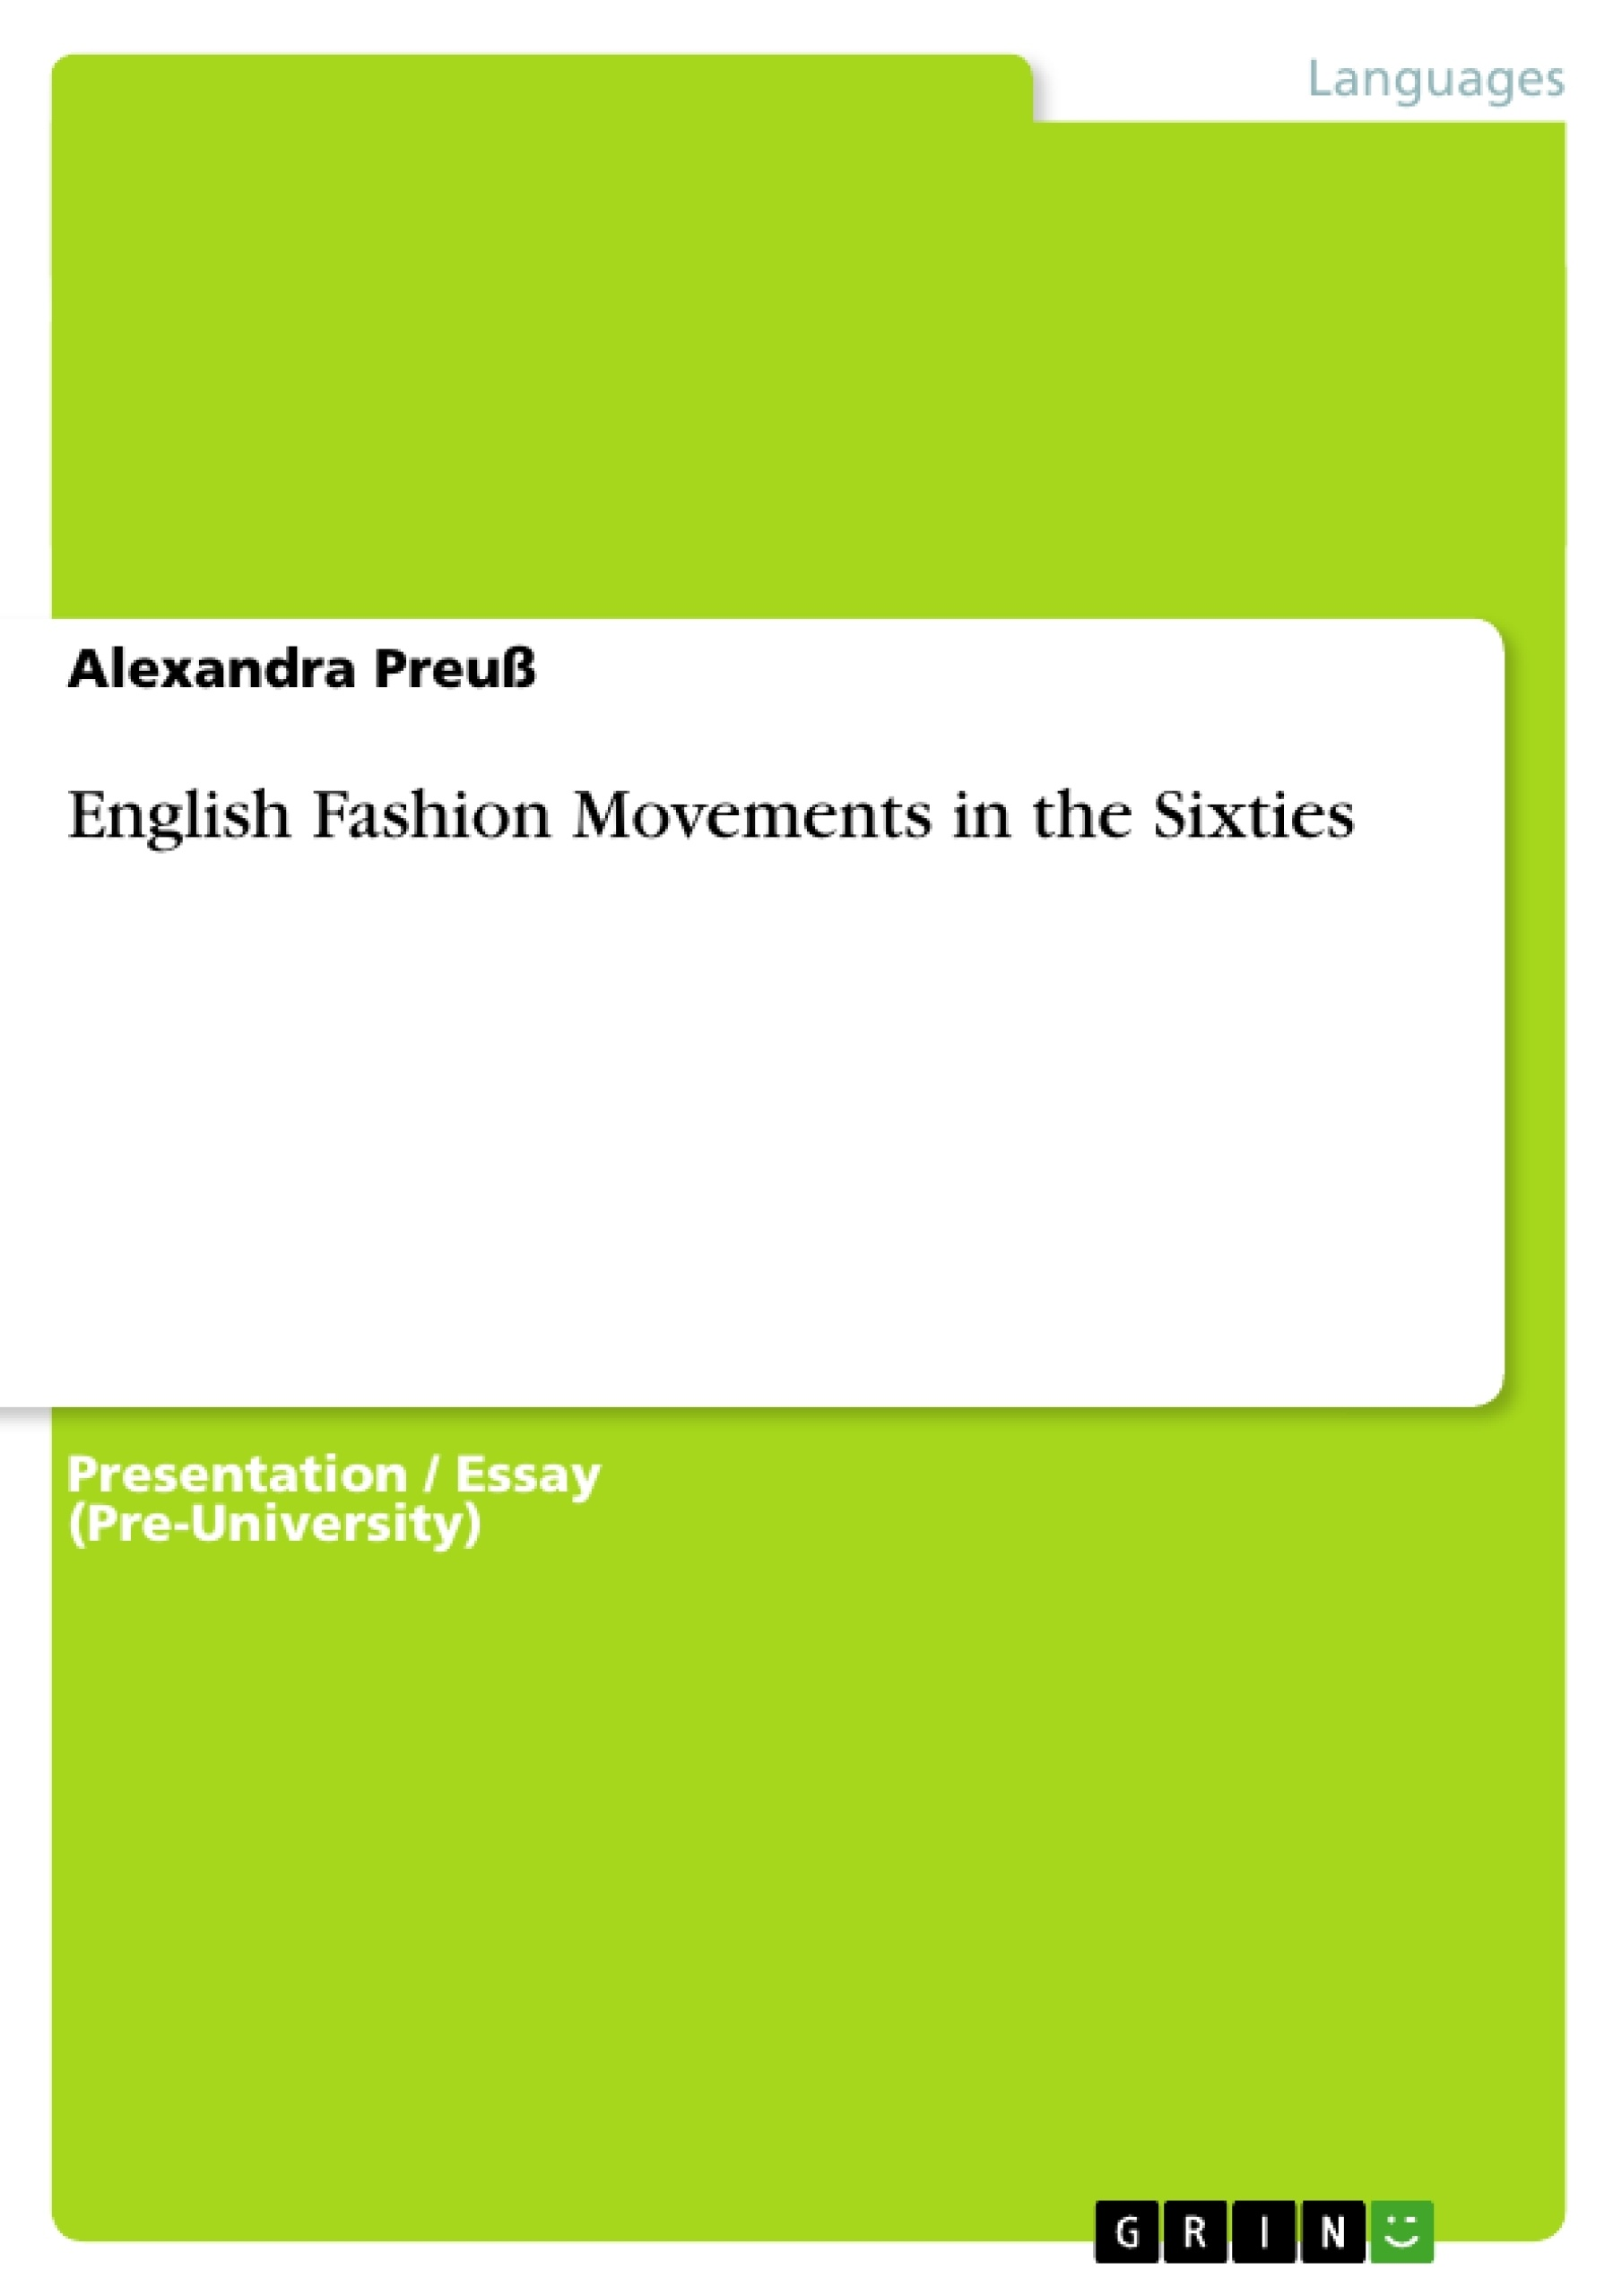 Title: English Fashion Movements in the Sixties